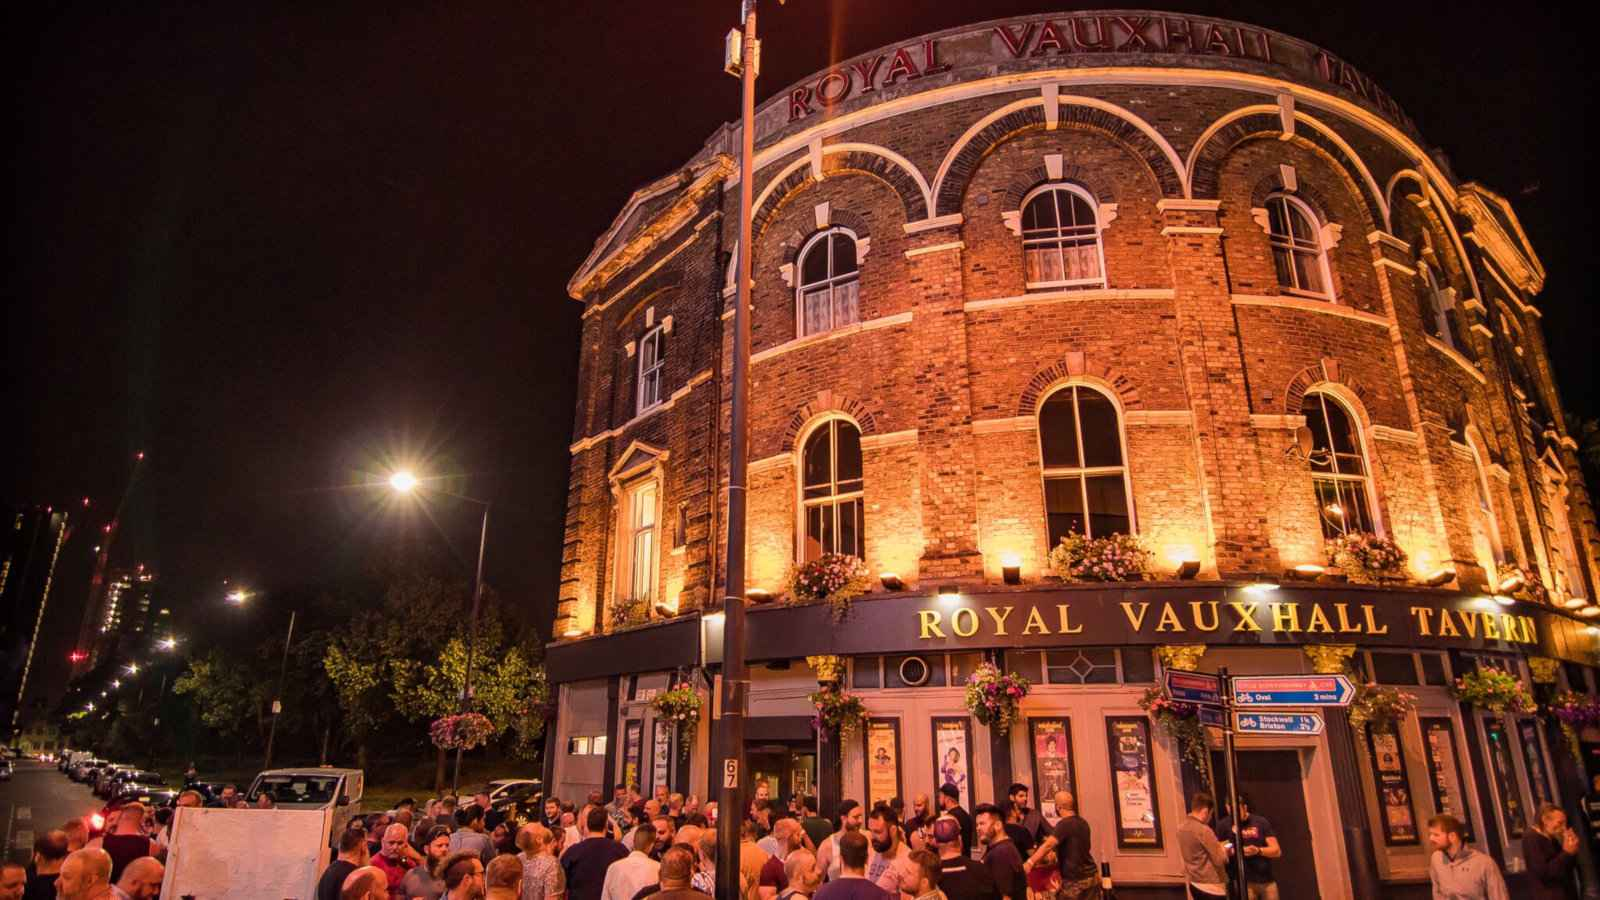 The Royal Vauxhall Tavern is one of the best drag clubs in London that has to be experienced!